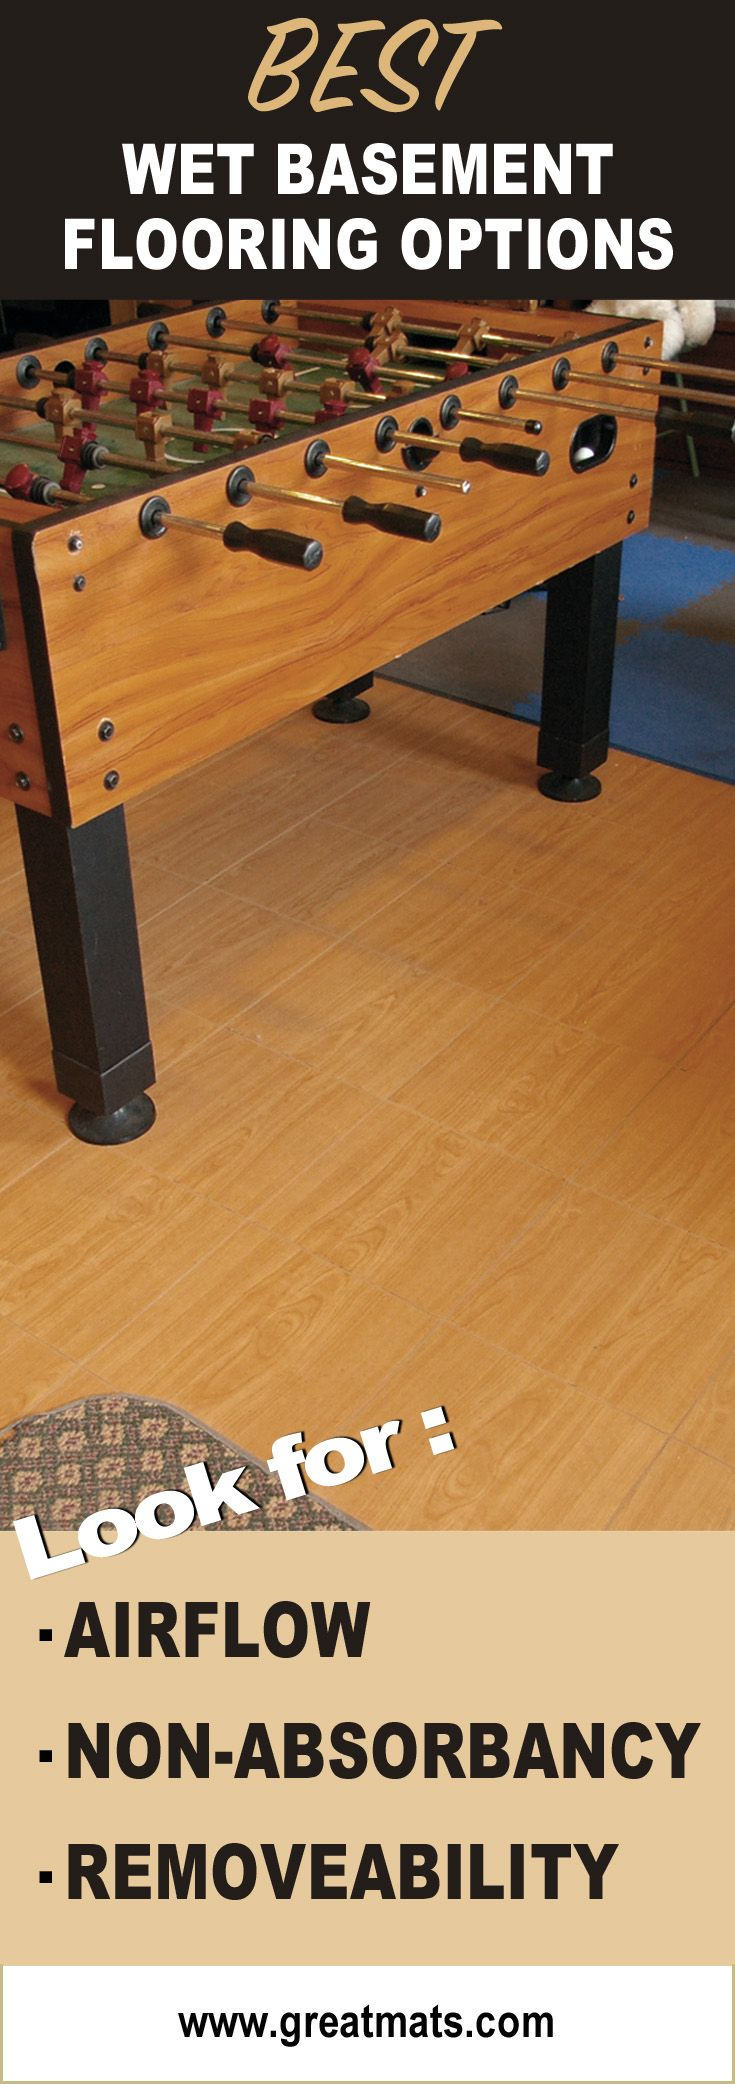 Greatmats Teaches You What To Look For In Flooring For Wet Basements.